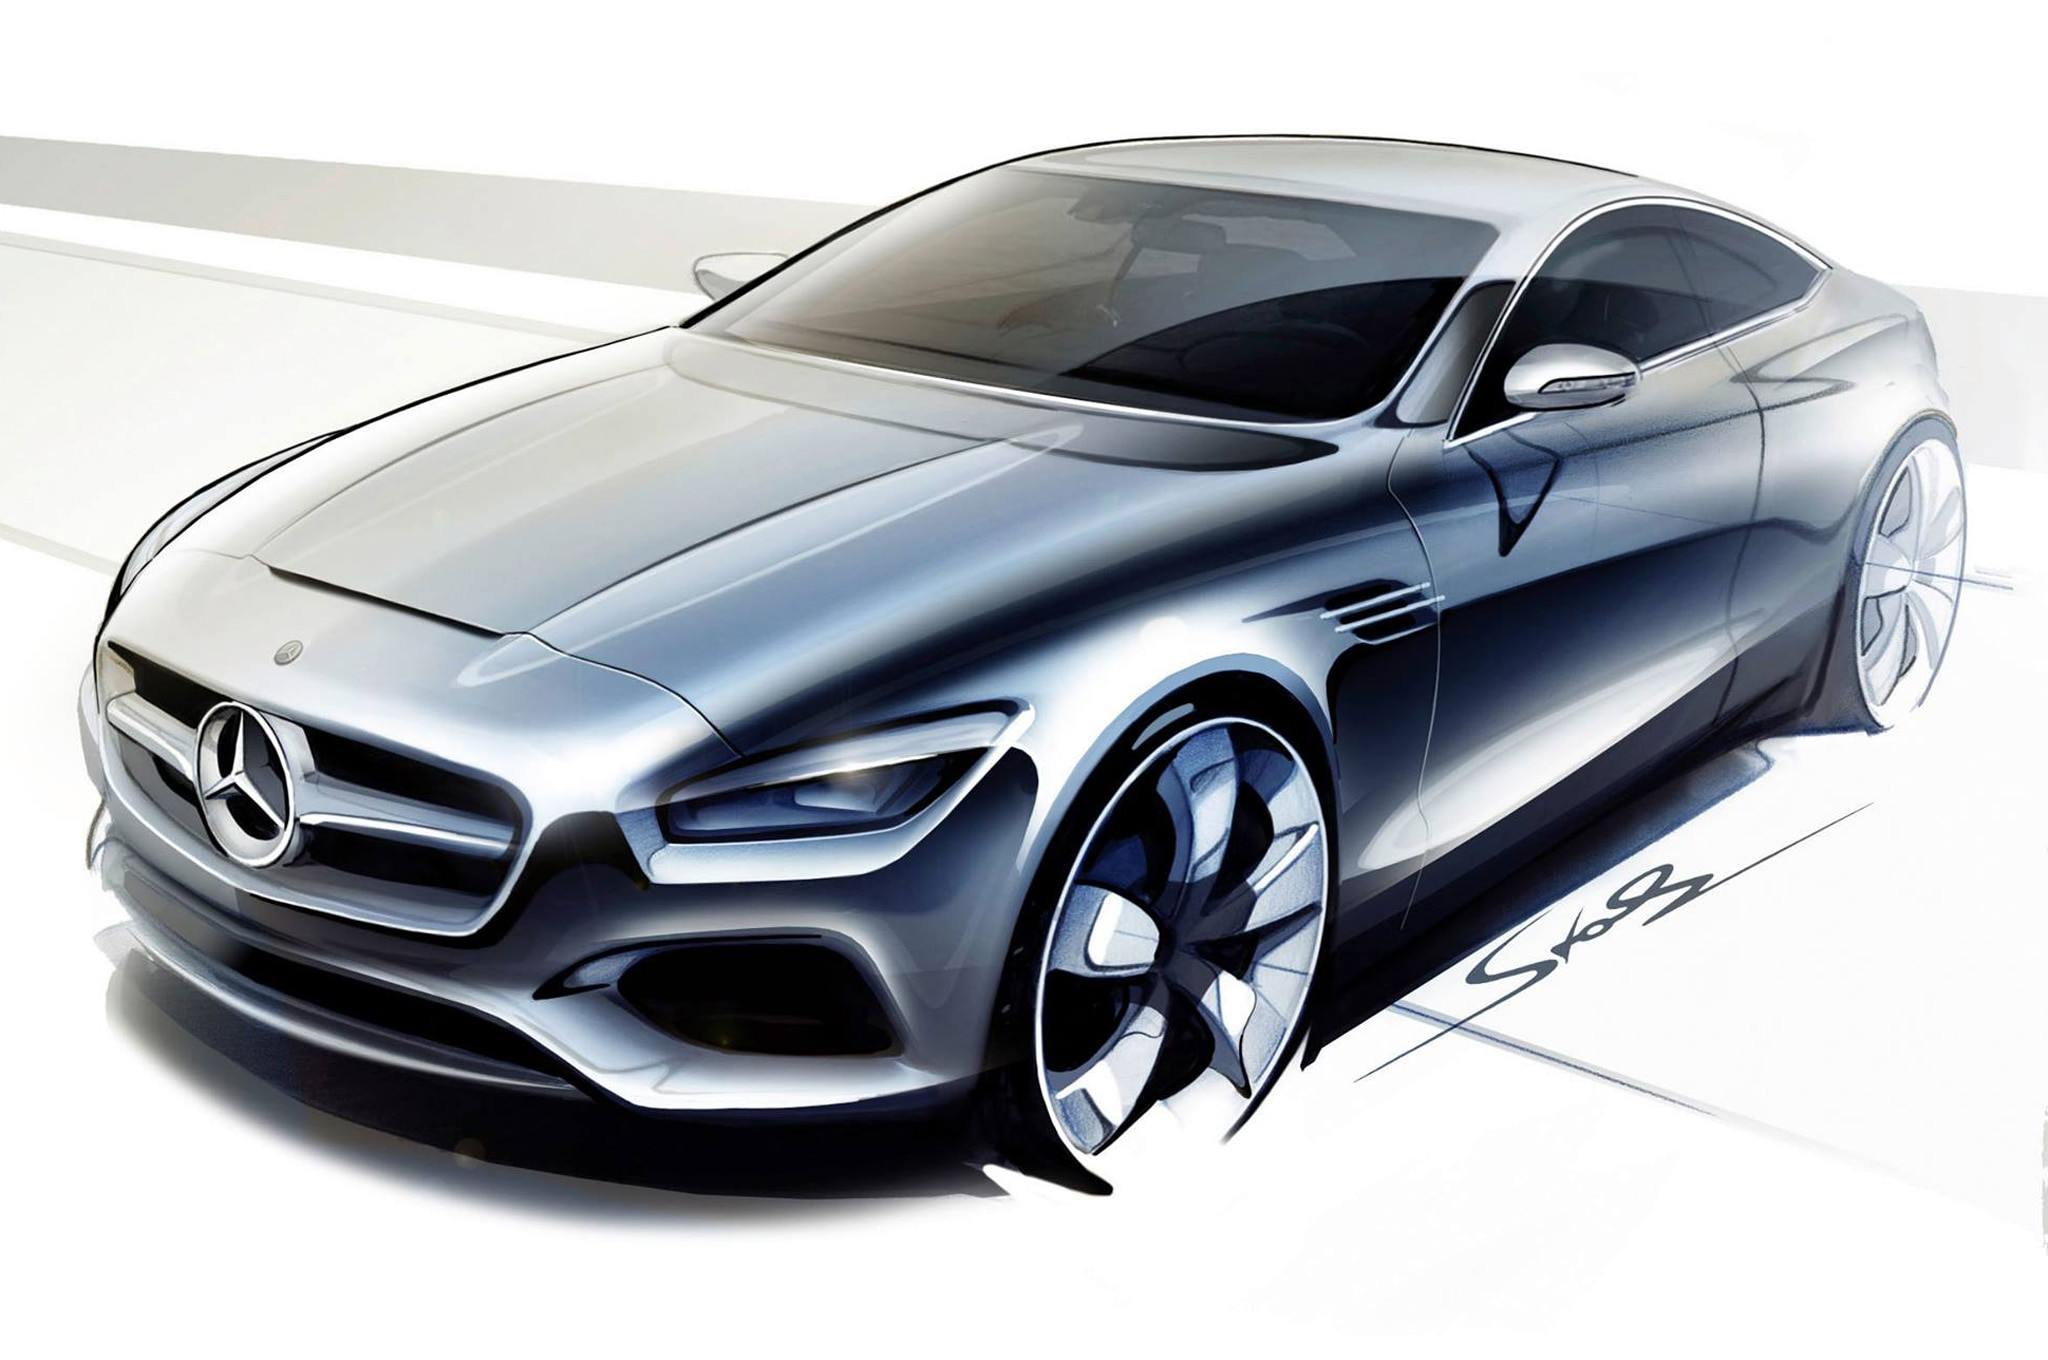 Mercedes Benz S Class Coupe Concept Rendering1